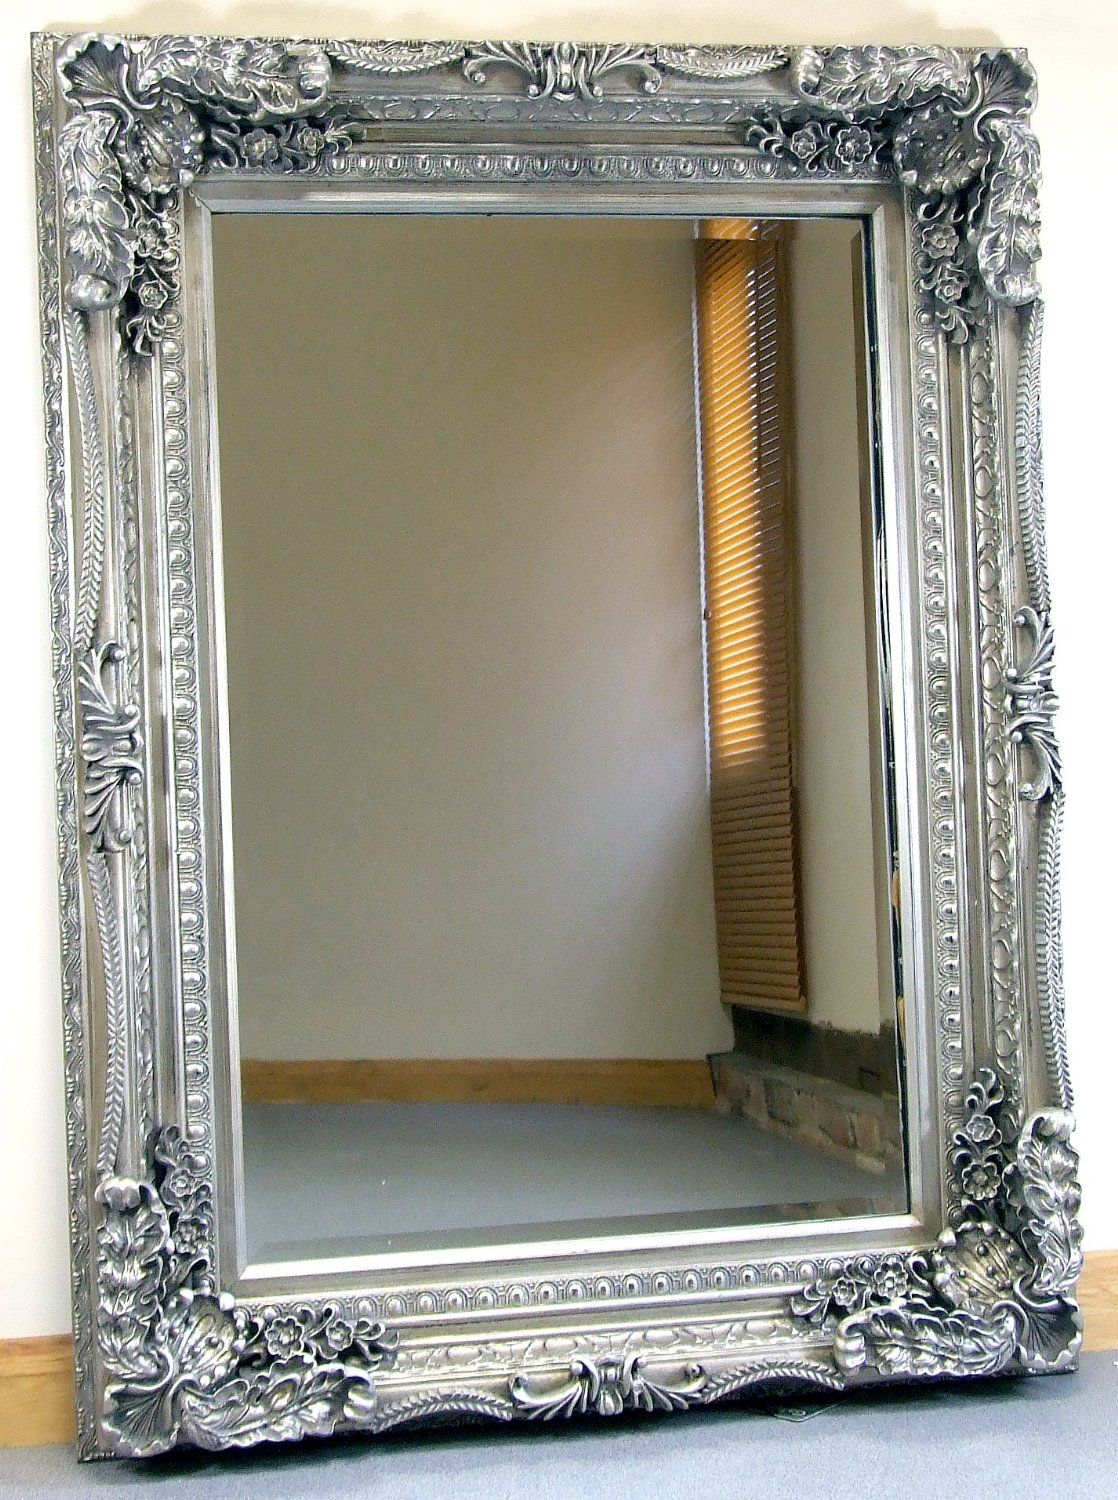 912839da8967 Carved Louis Silver Ornate French Frame Wall   Over Mantle Mirror - 35in x  47in  Amazon.co.uk  Kitchen   Home